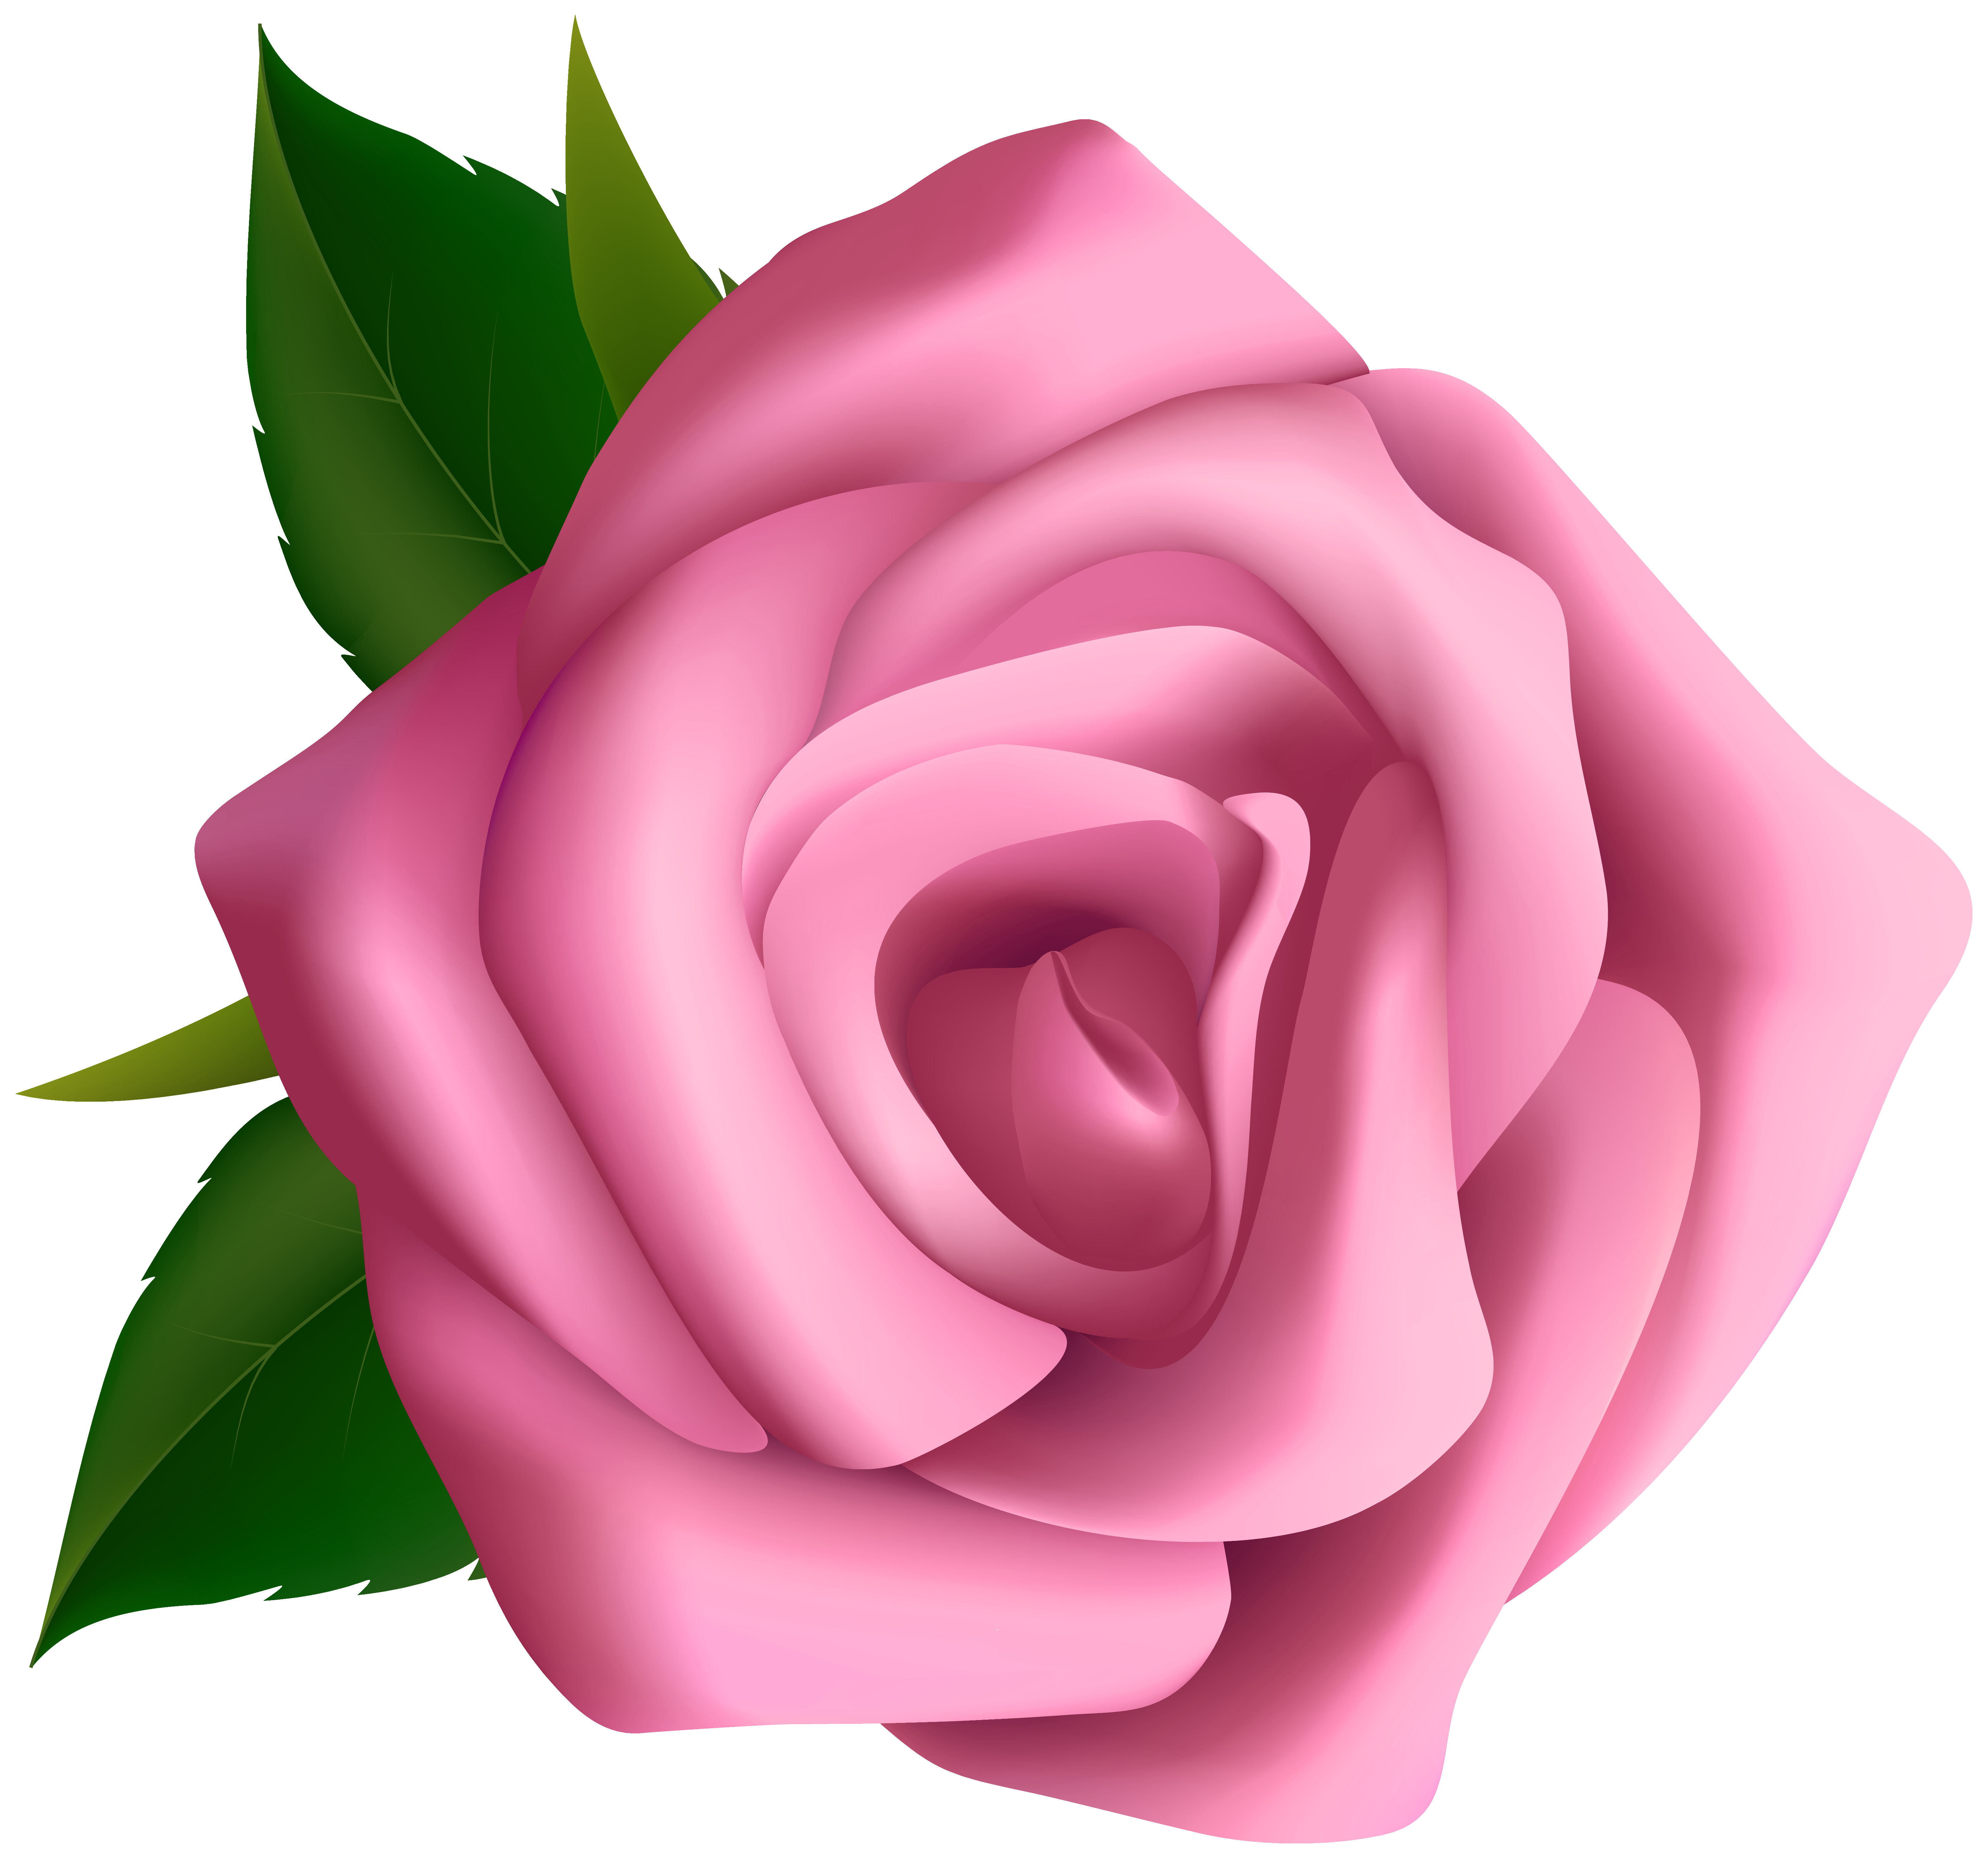 Pink Rose clipart Image Cliparting pink image Soft